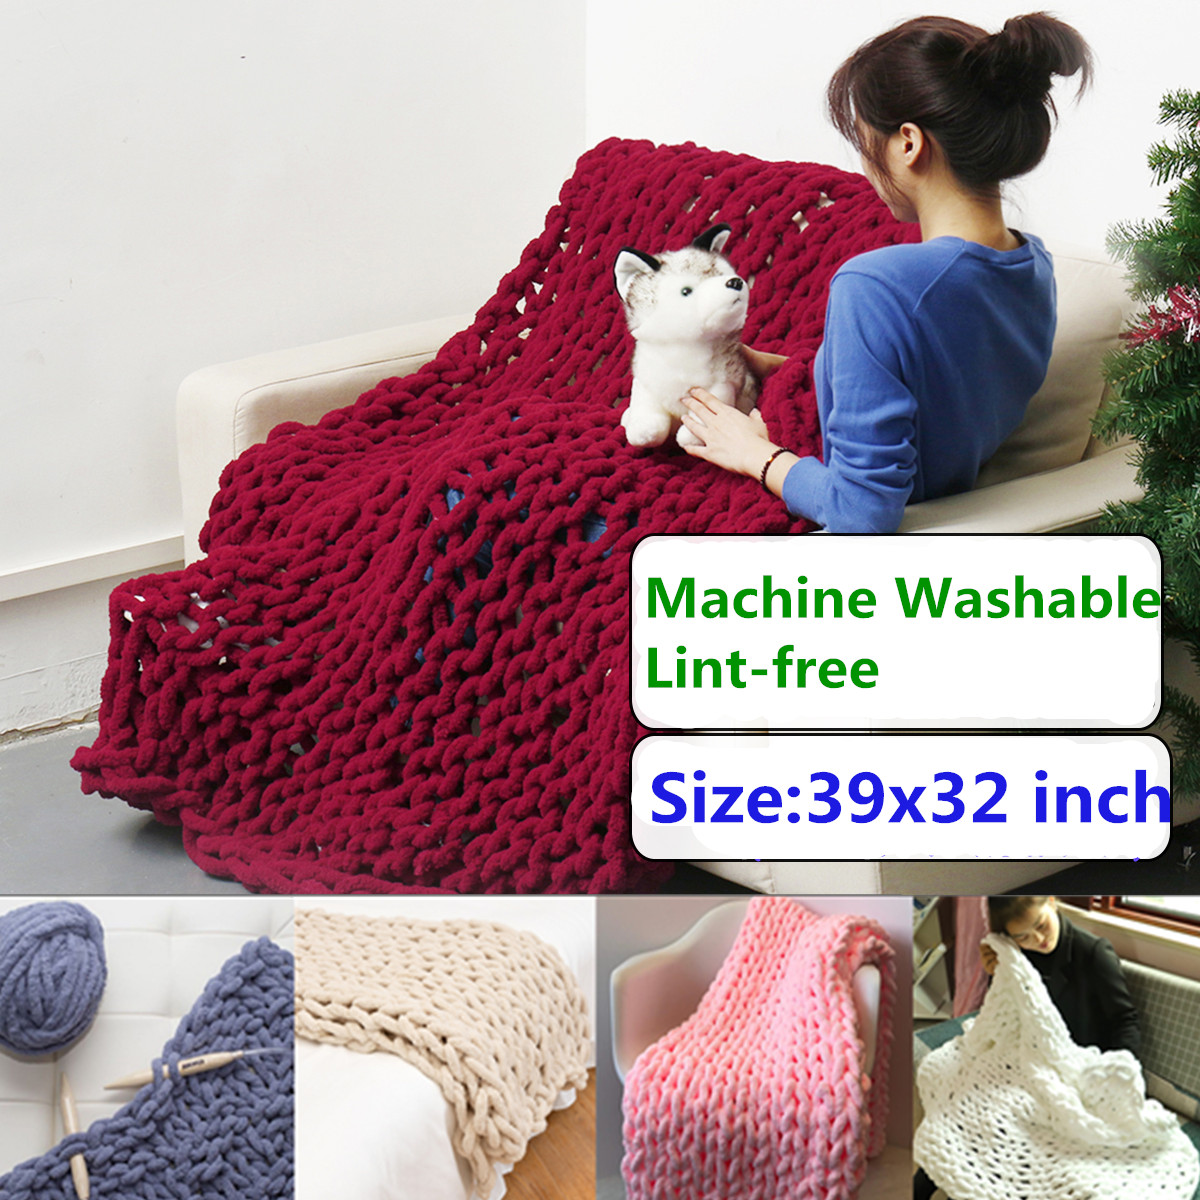 39x32 inch Washable Hand-woven Bulky Warm Soft Chunky Knit Blanket Lint-free Thick Yarn Knitted Bedding Sofa Throw